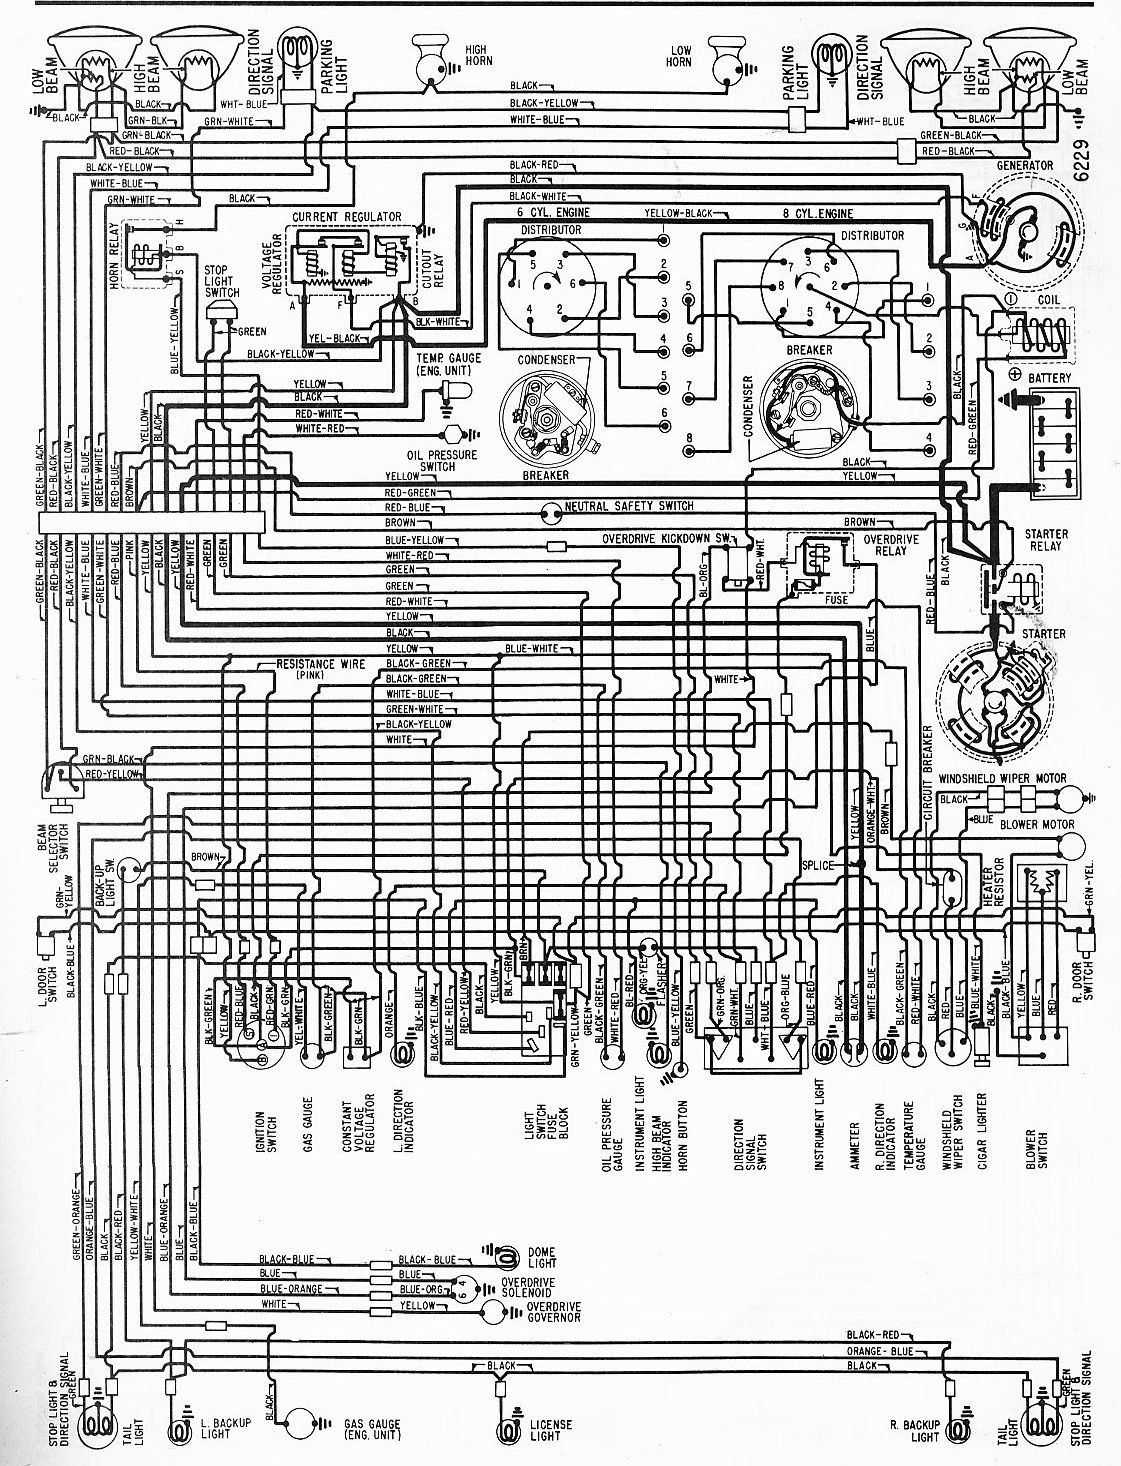 chevrolet c10 fuse box wiring diagram toolbox 1985 chevy c10 fuse box location 1970 chevy c10 [ 1121 x 1466 Pixel ]